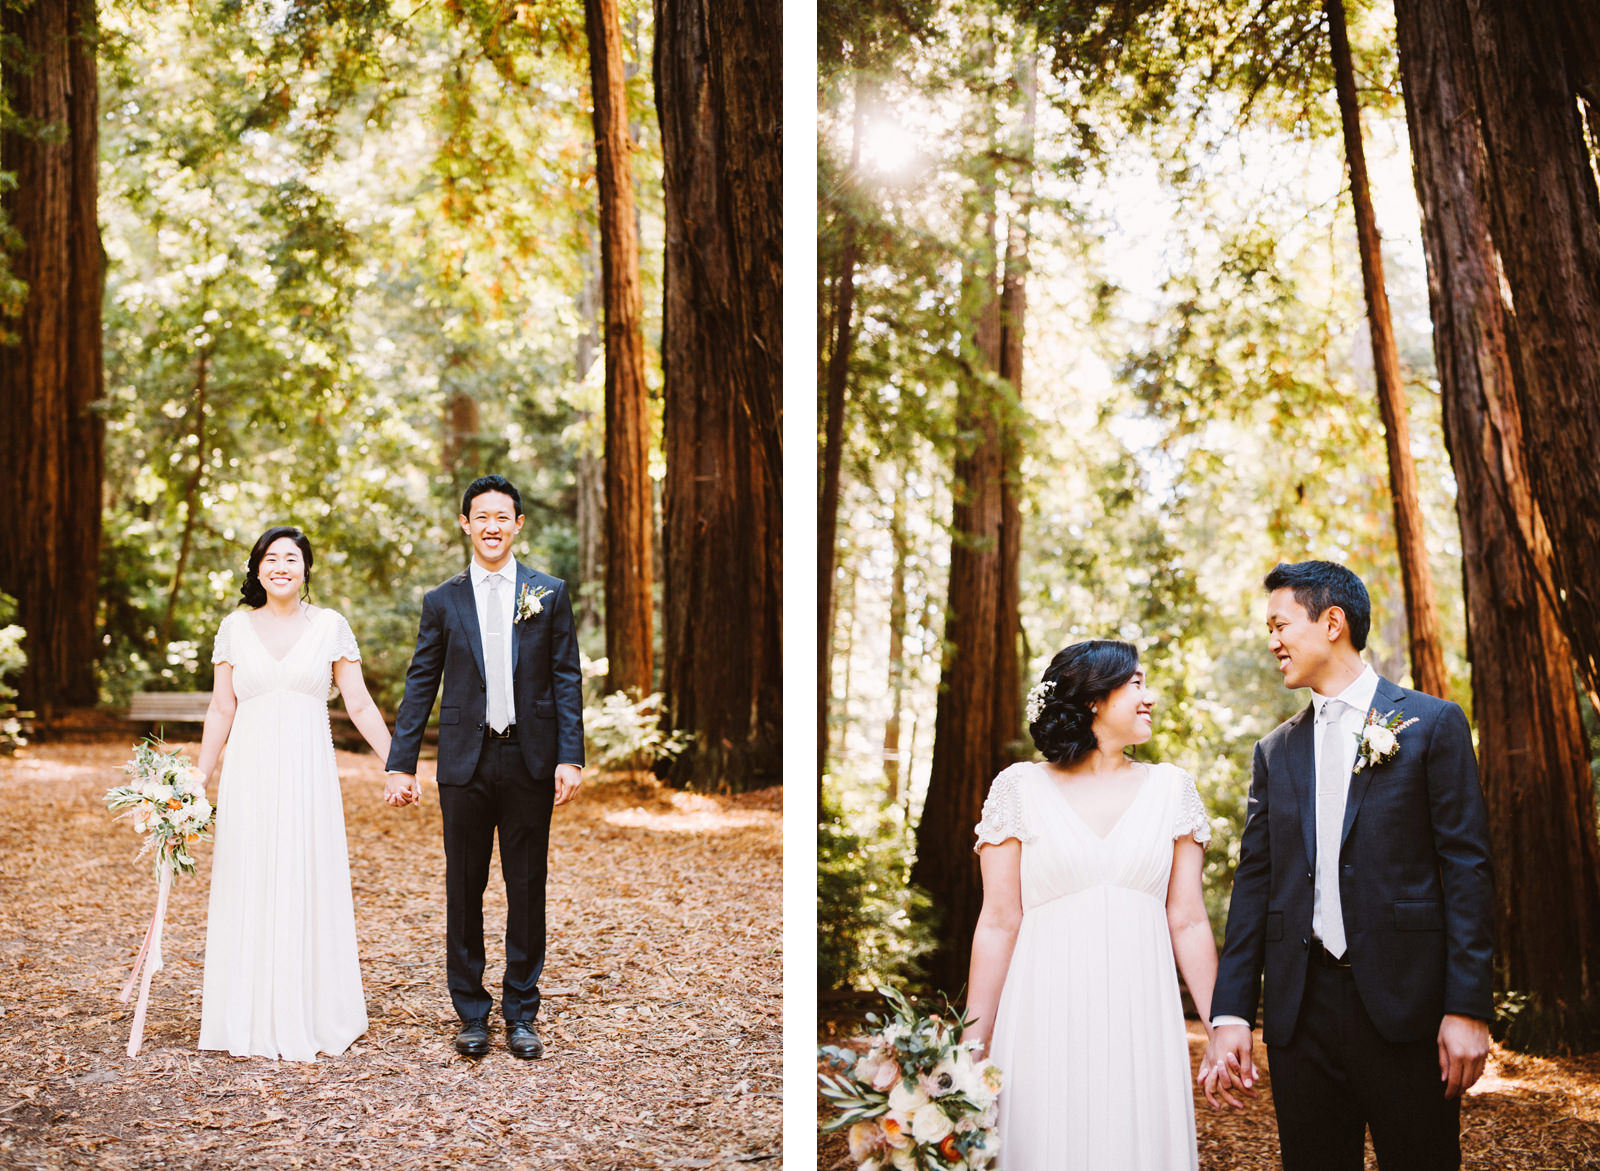 kimclay-blog-008 REDWOOD FOREST WEDDING